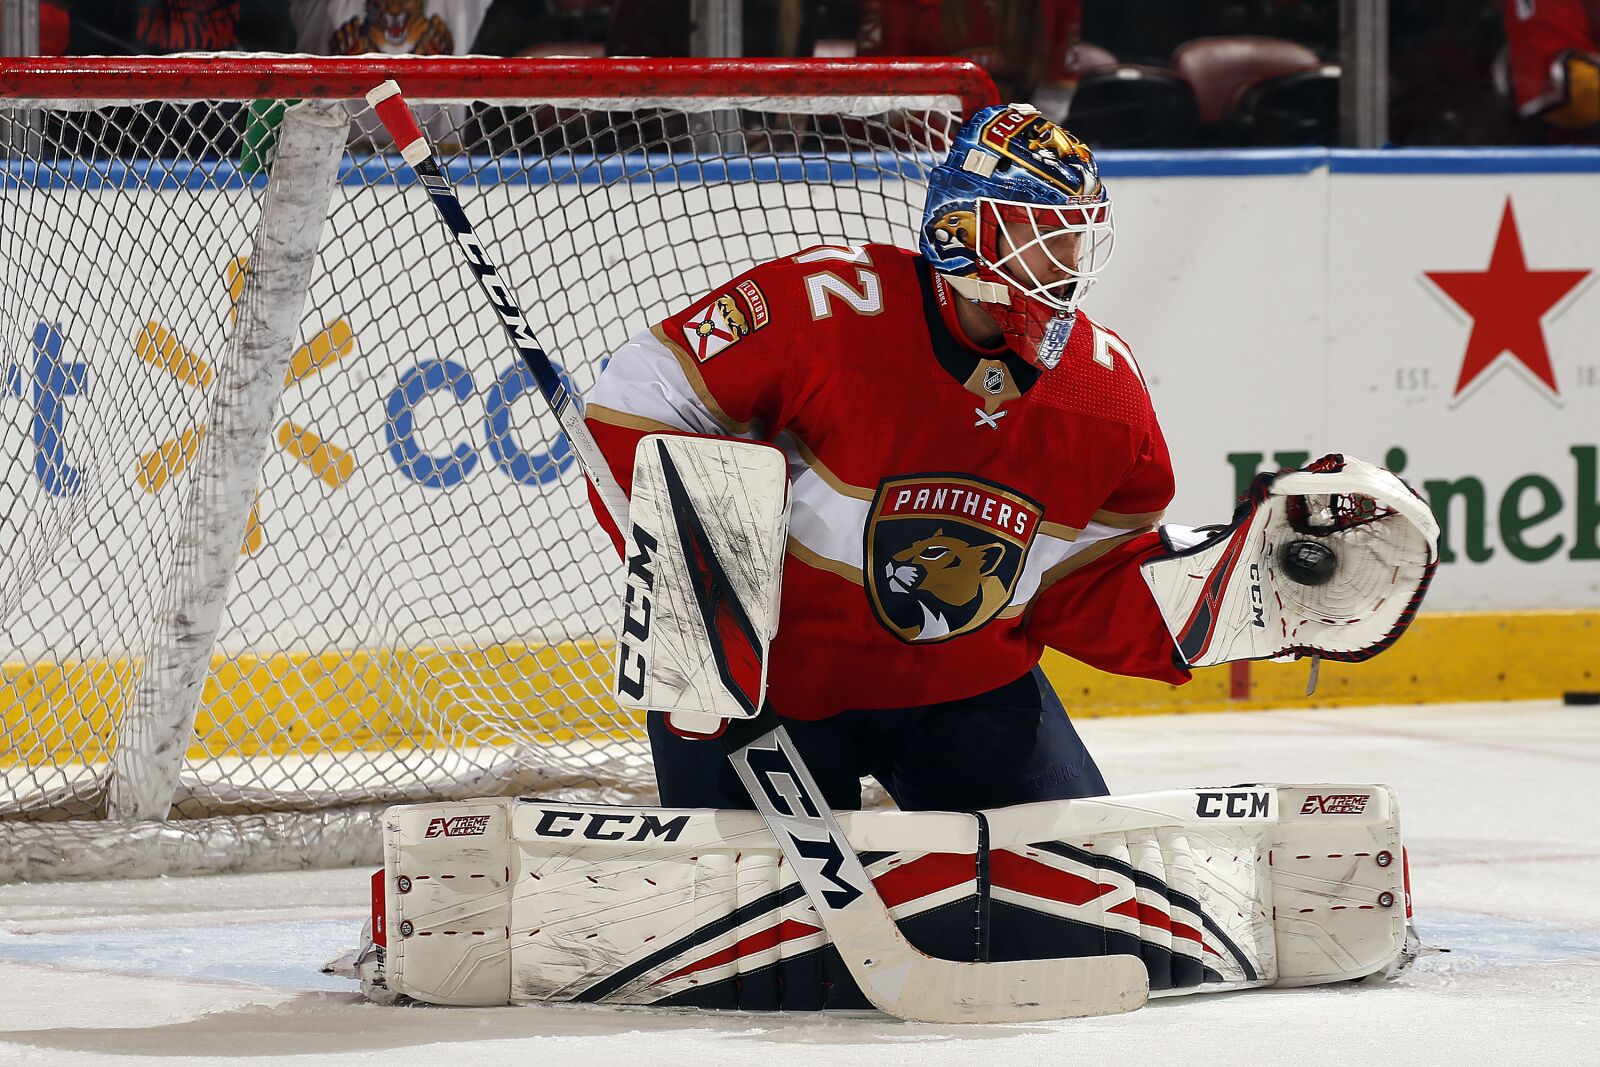 Florida Panthers: Sergei Bobrovsky berates the Blue Jackets in 4-1 win